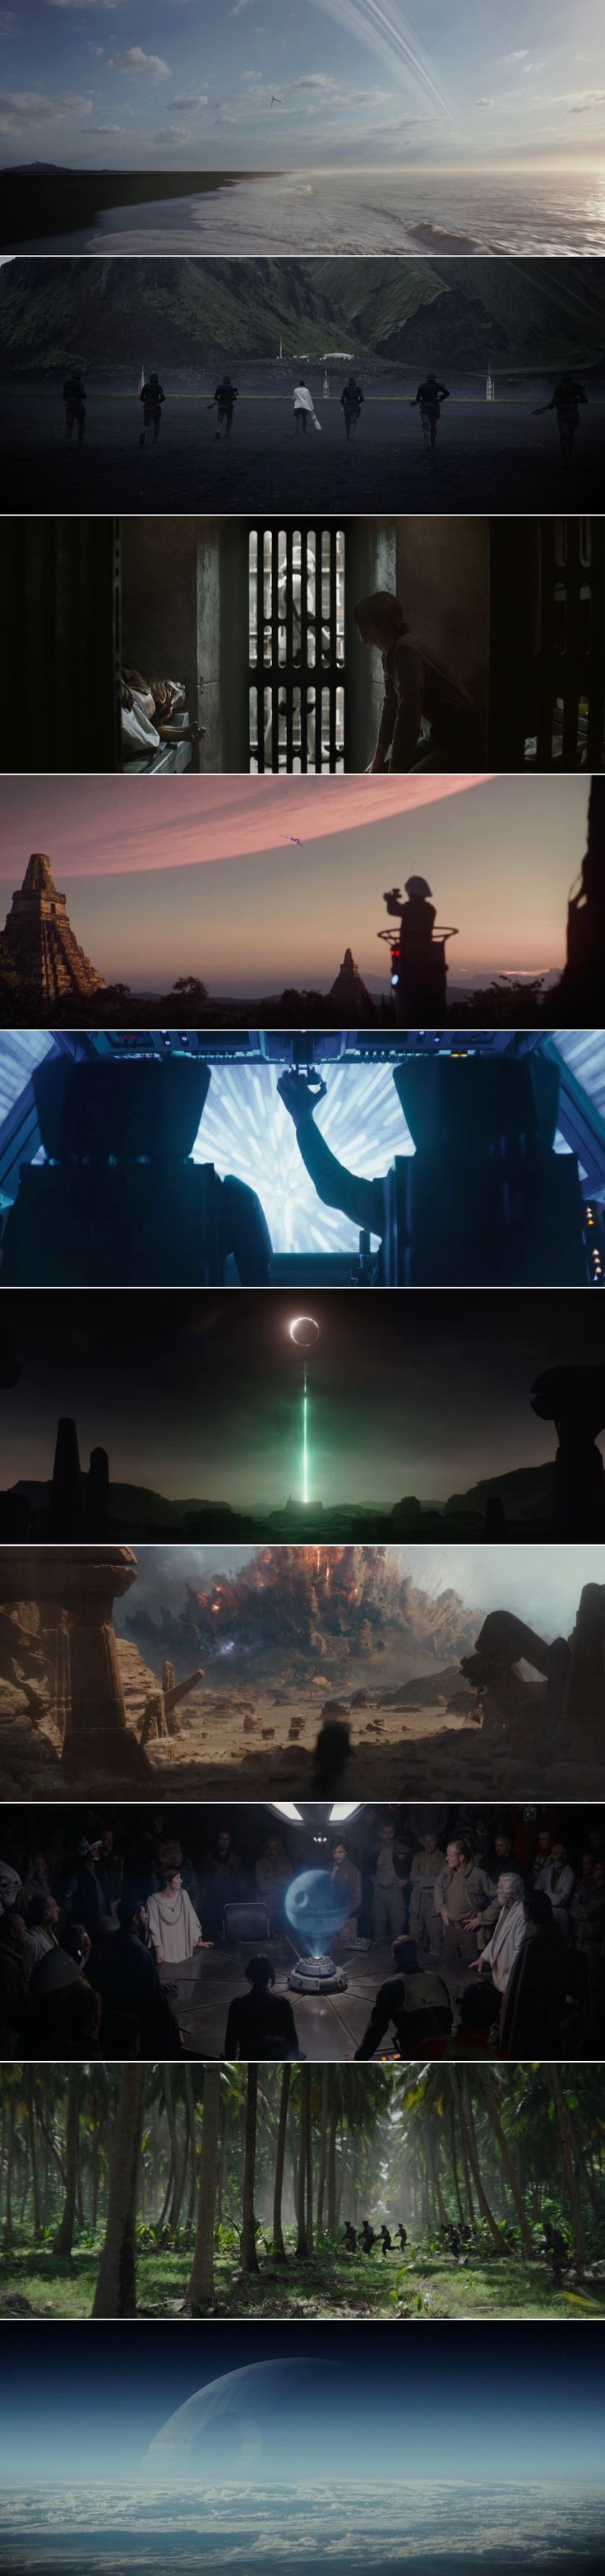 """""""We have hope. Rebellions are built on hope!"""" //  Rogue One: A Star Wars Story (2016, Gareth Edwards) cinematography by Greig Fraser"""